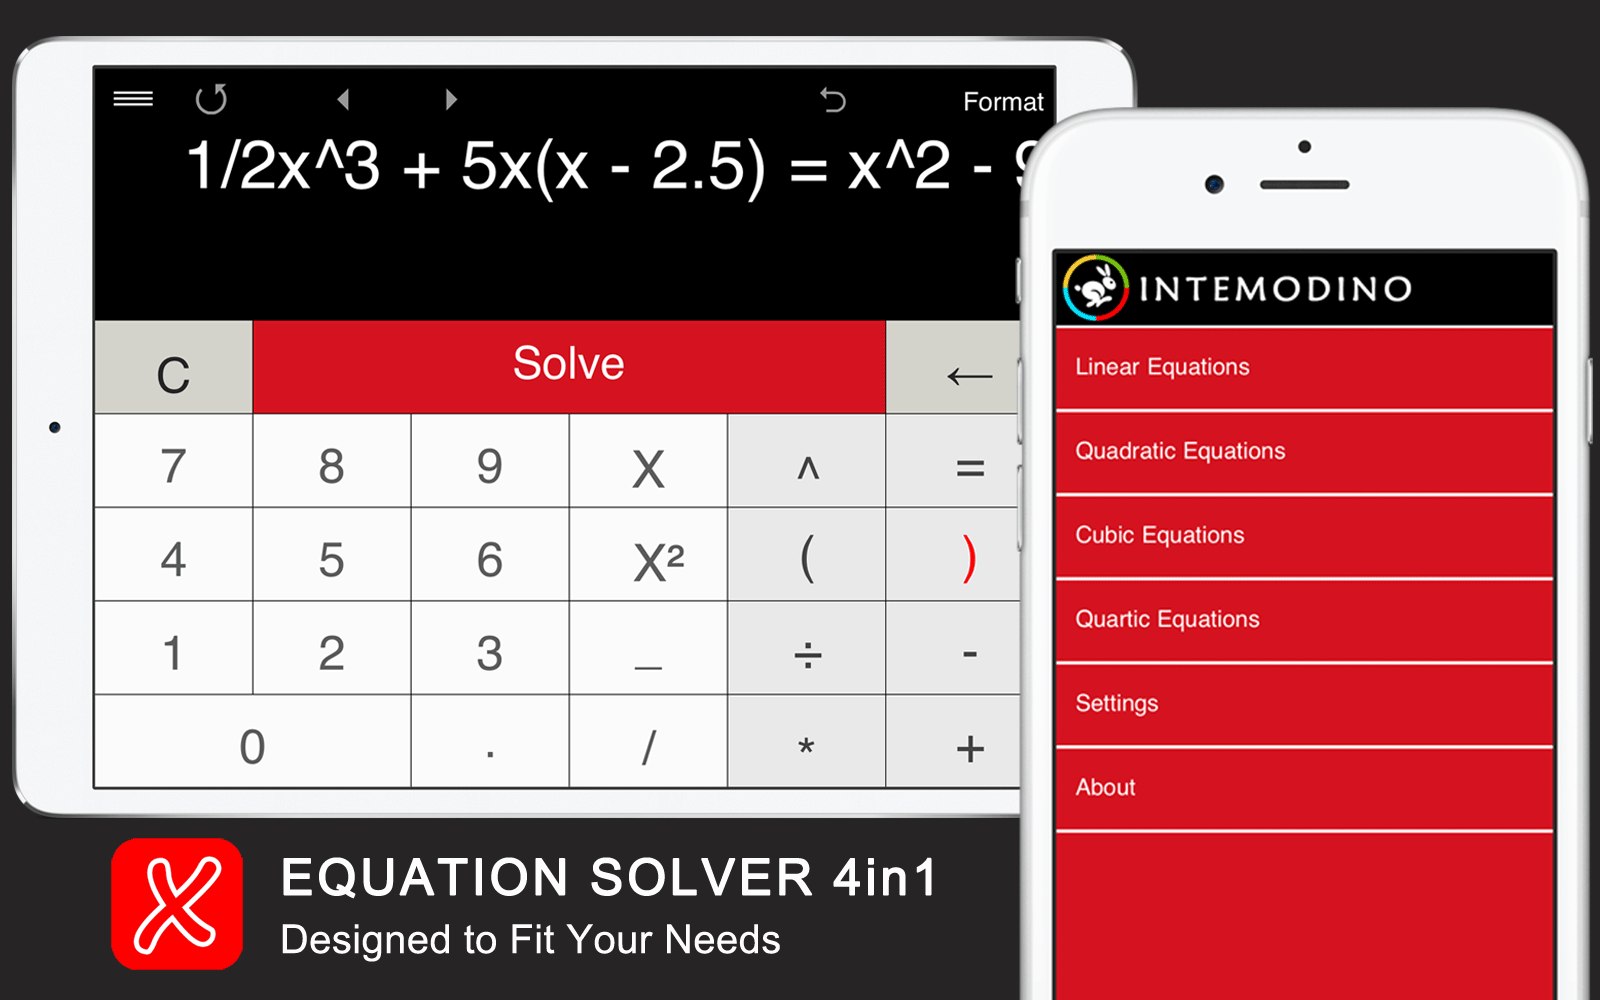 Equation Solver 4in1